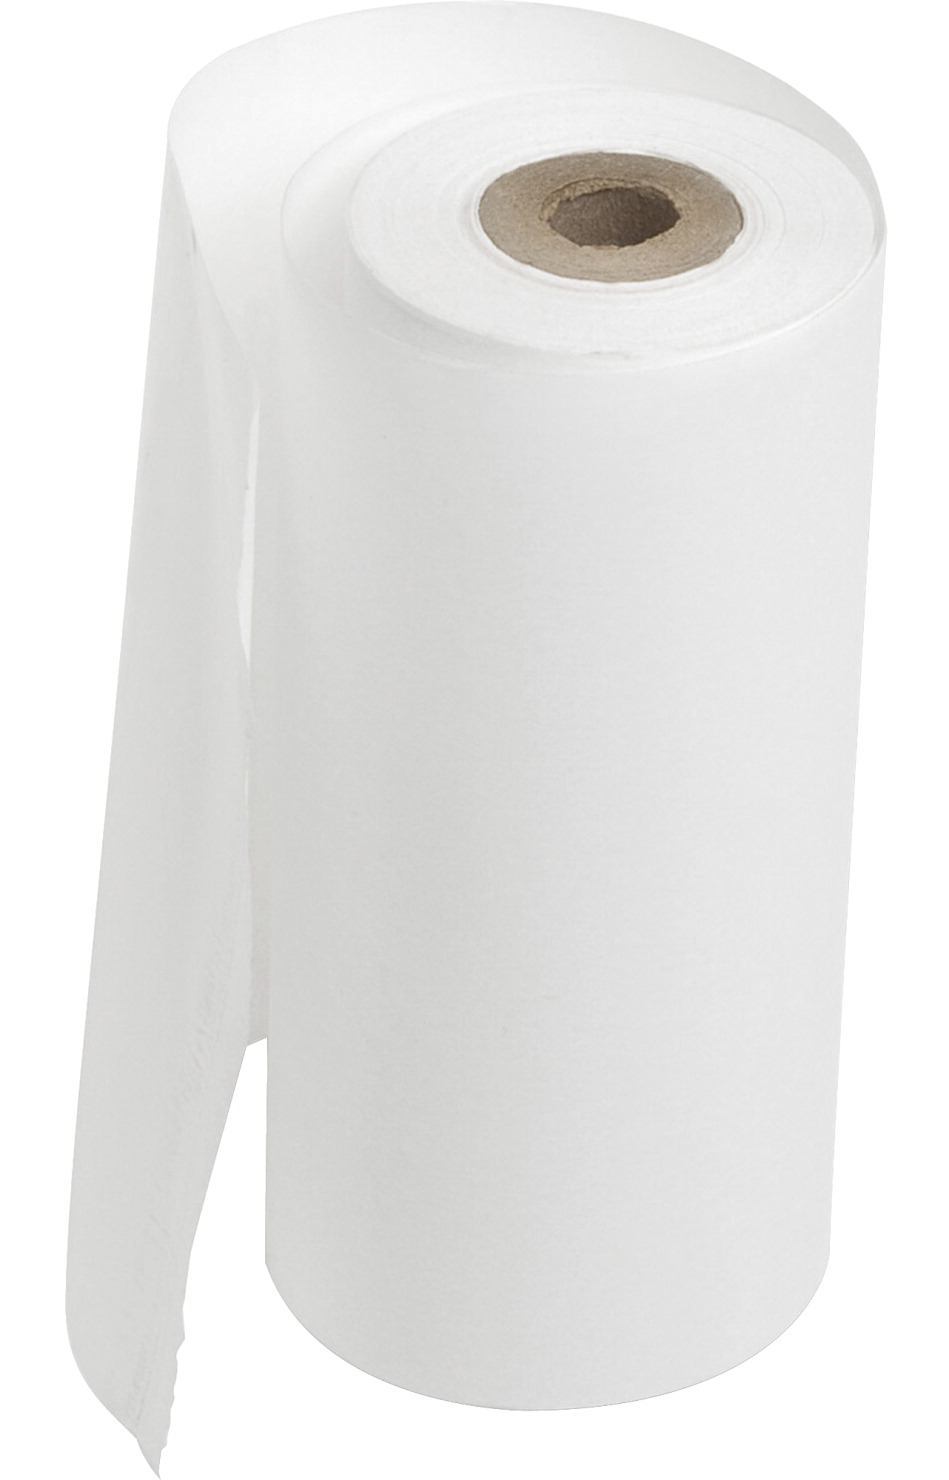 Sparco PM Company Paper Tech Print Med/Lab Roll, 4-1/4 in X 78 ft, White,  Pack of 12